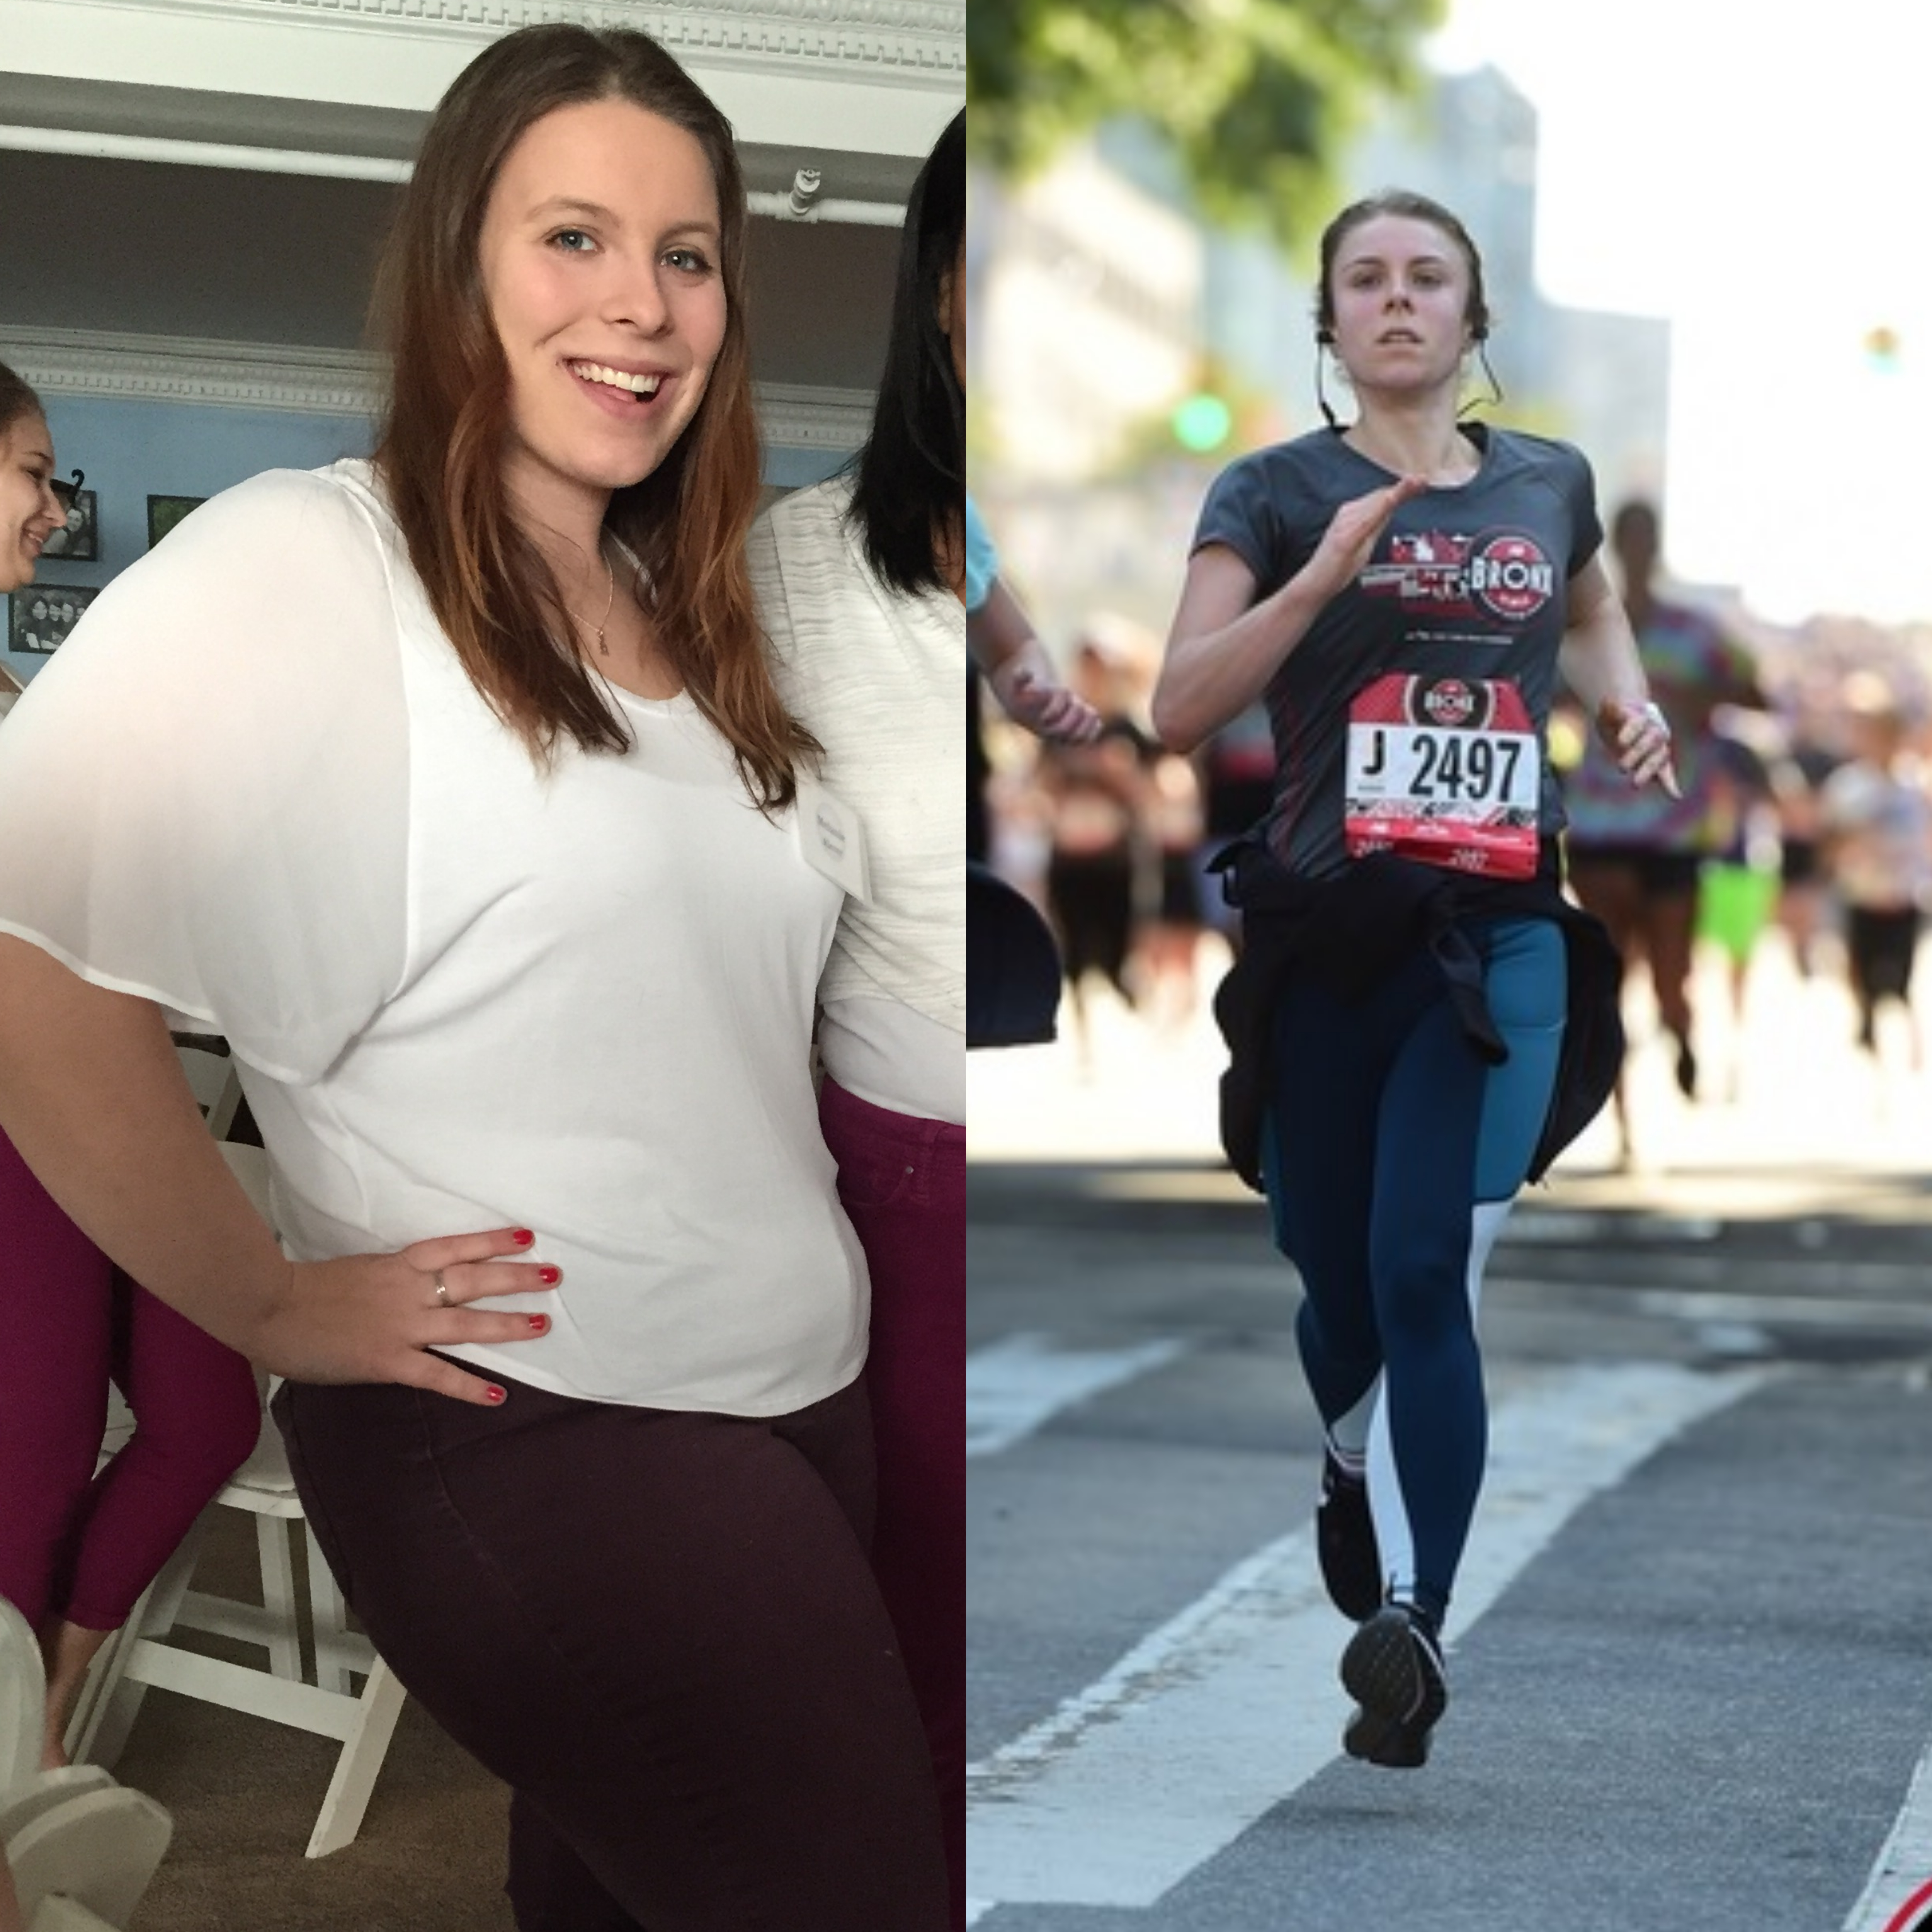 5 feet 6 Female 95 lbs Weight Loss Before and After 232 lbs to 137 lbs